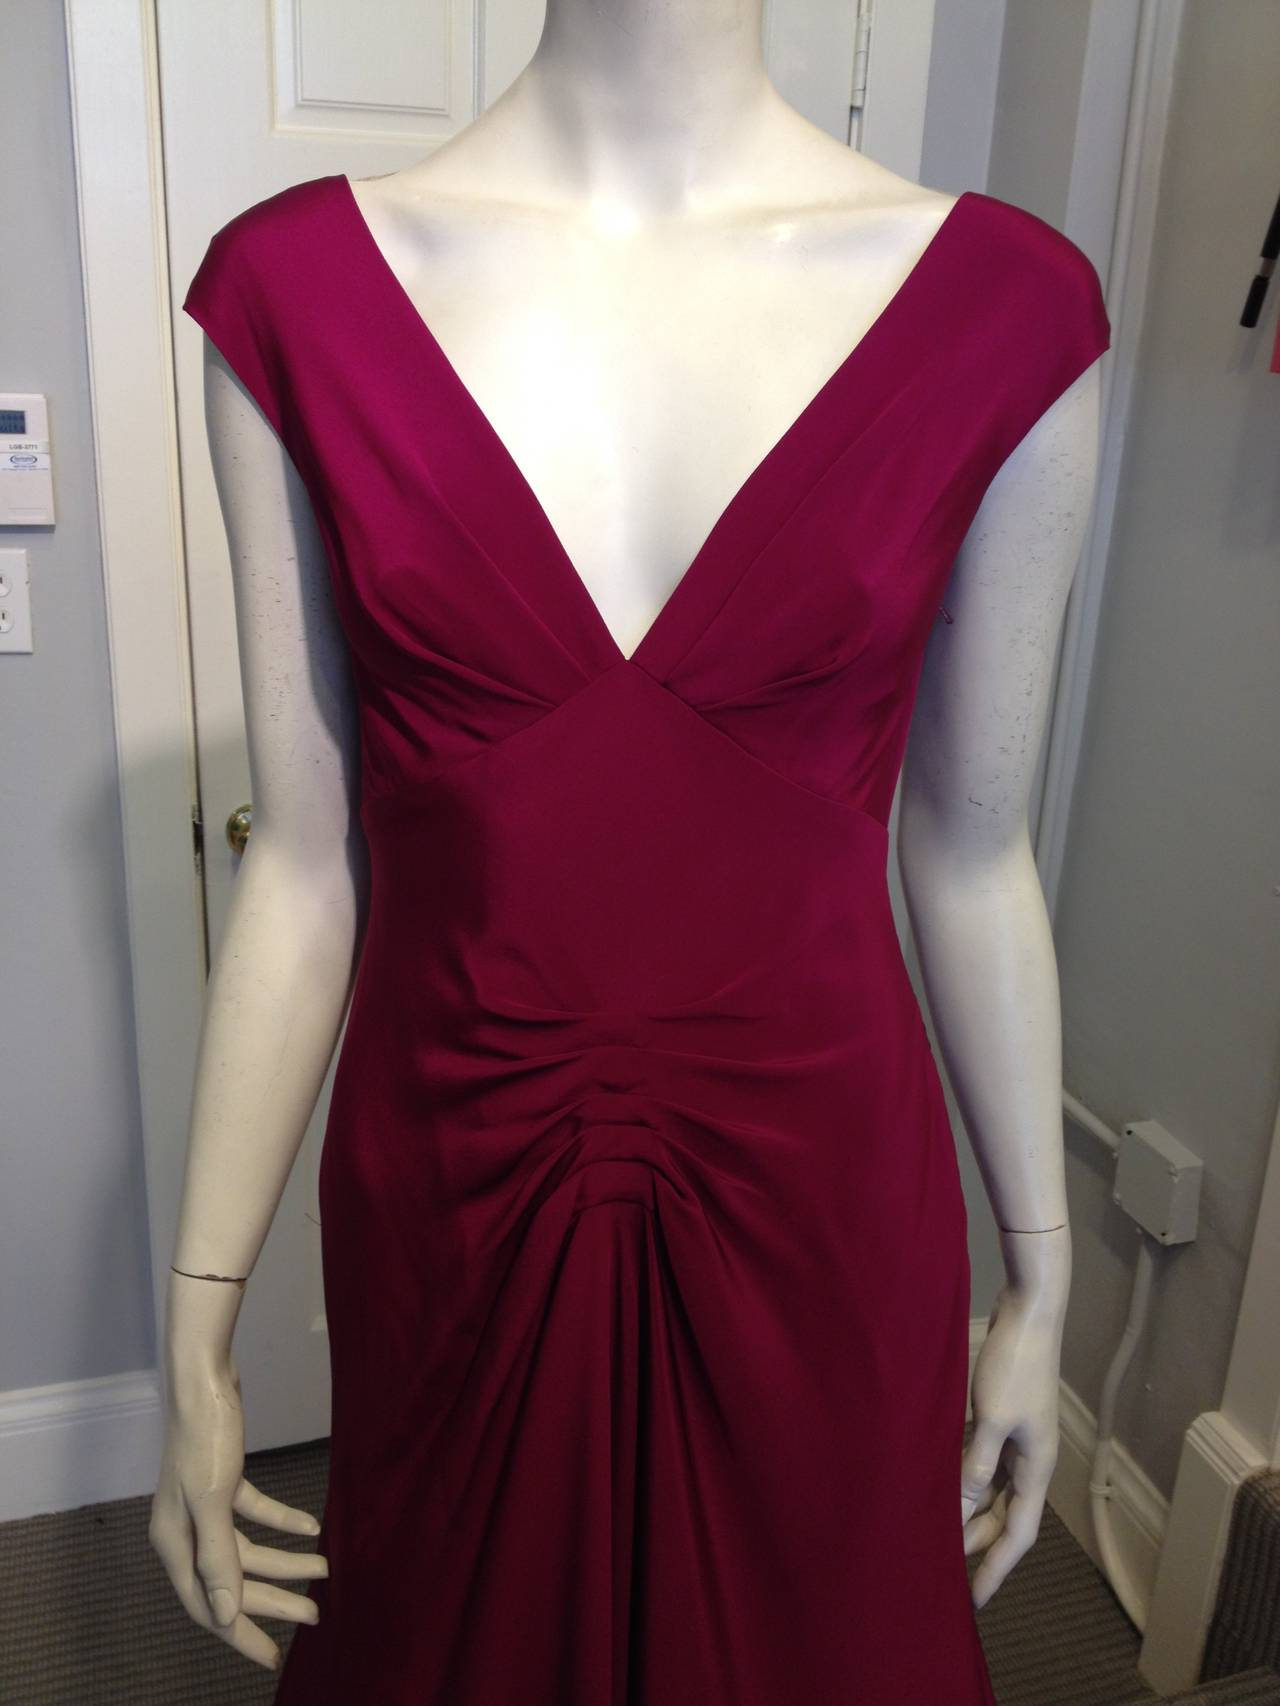 Red carpet ready! This piece is simply exquisite. The front is glamorous in a demure way, with a sharp and clean deep V-neck and a series of pleats to create a beautiful draping effect down the front of the skirt. The back, however, is so stunning -